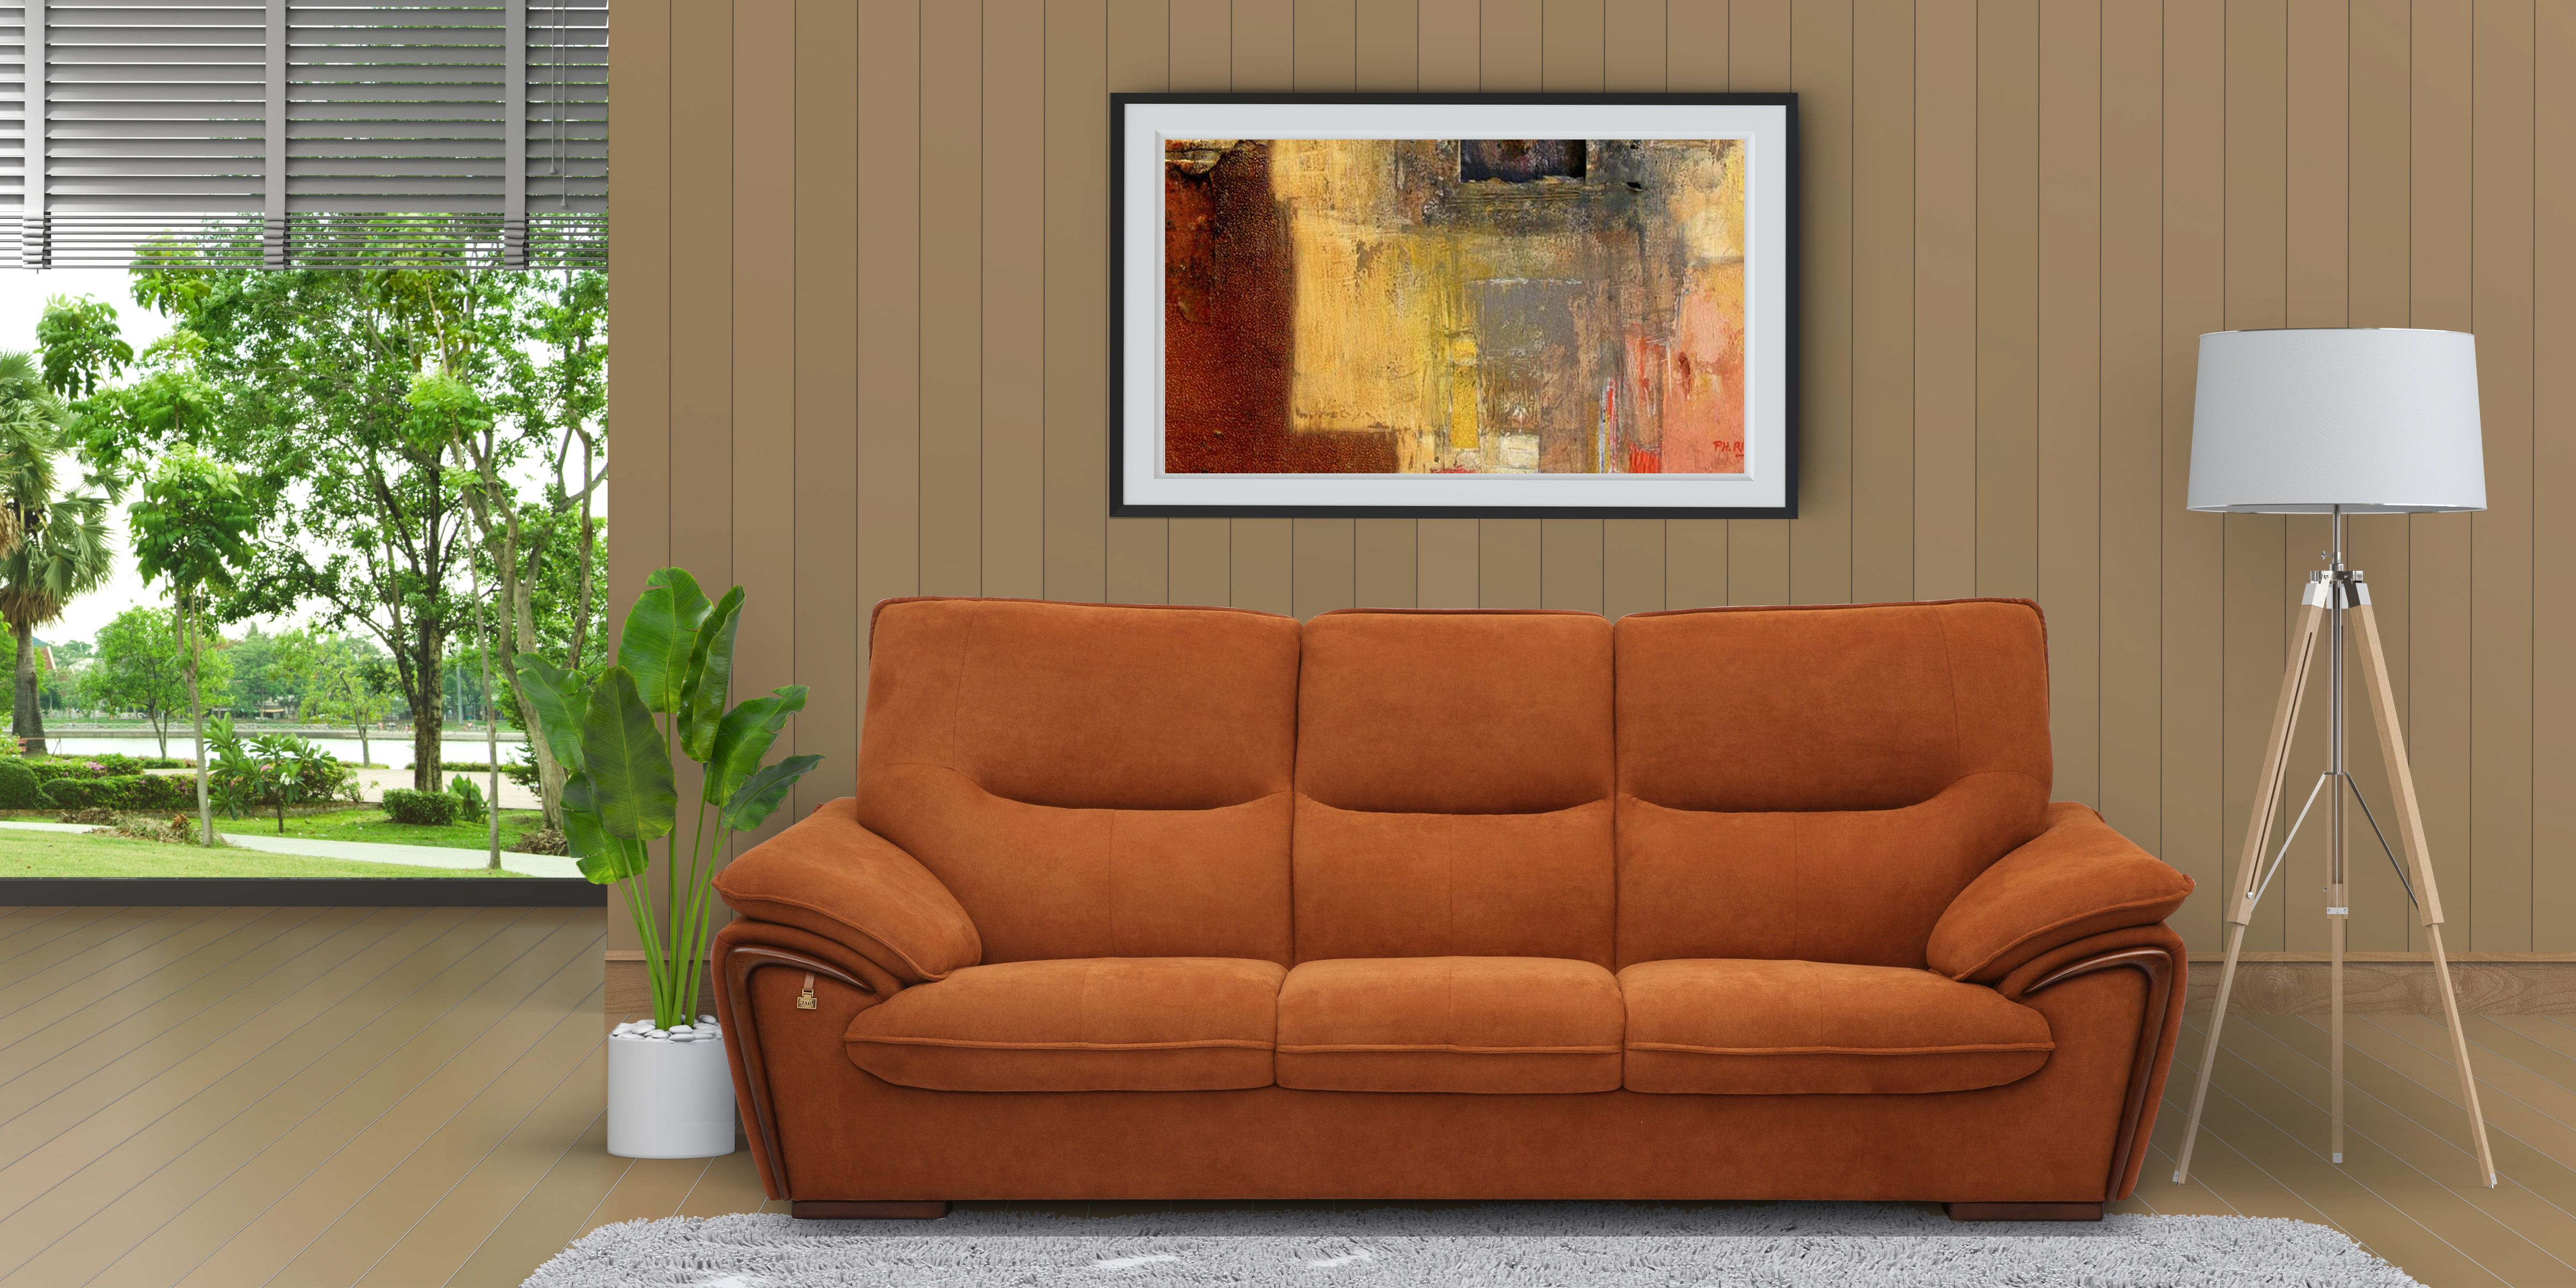 Pin By Hatil On Sofa Hatil In 2020 Sofa Price Leather Sofa Furniture